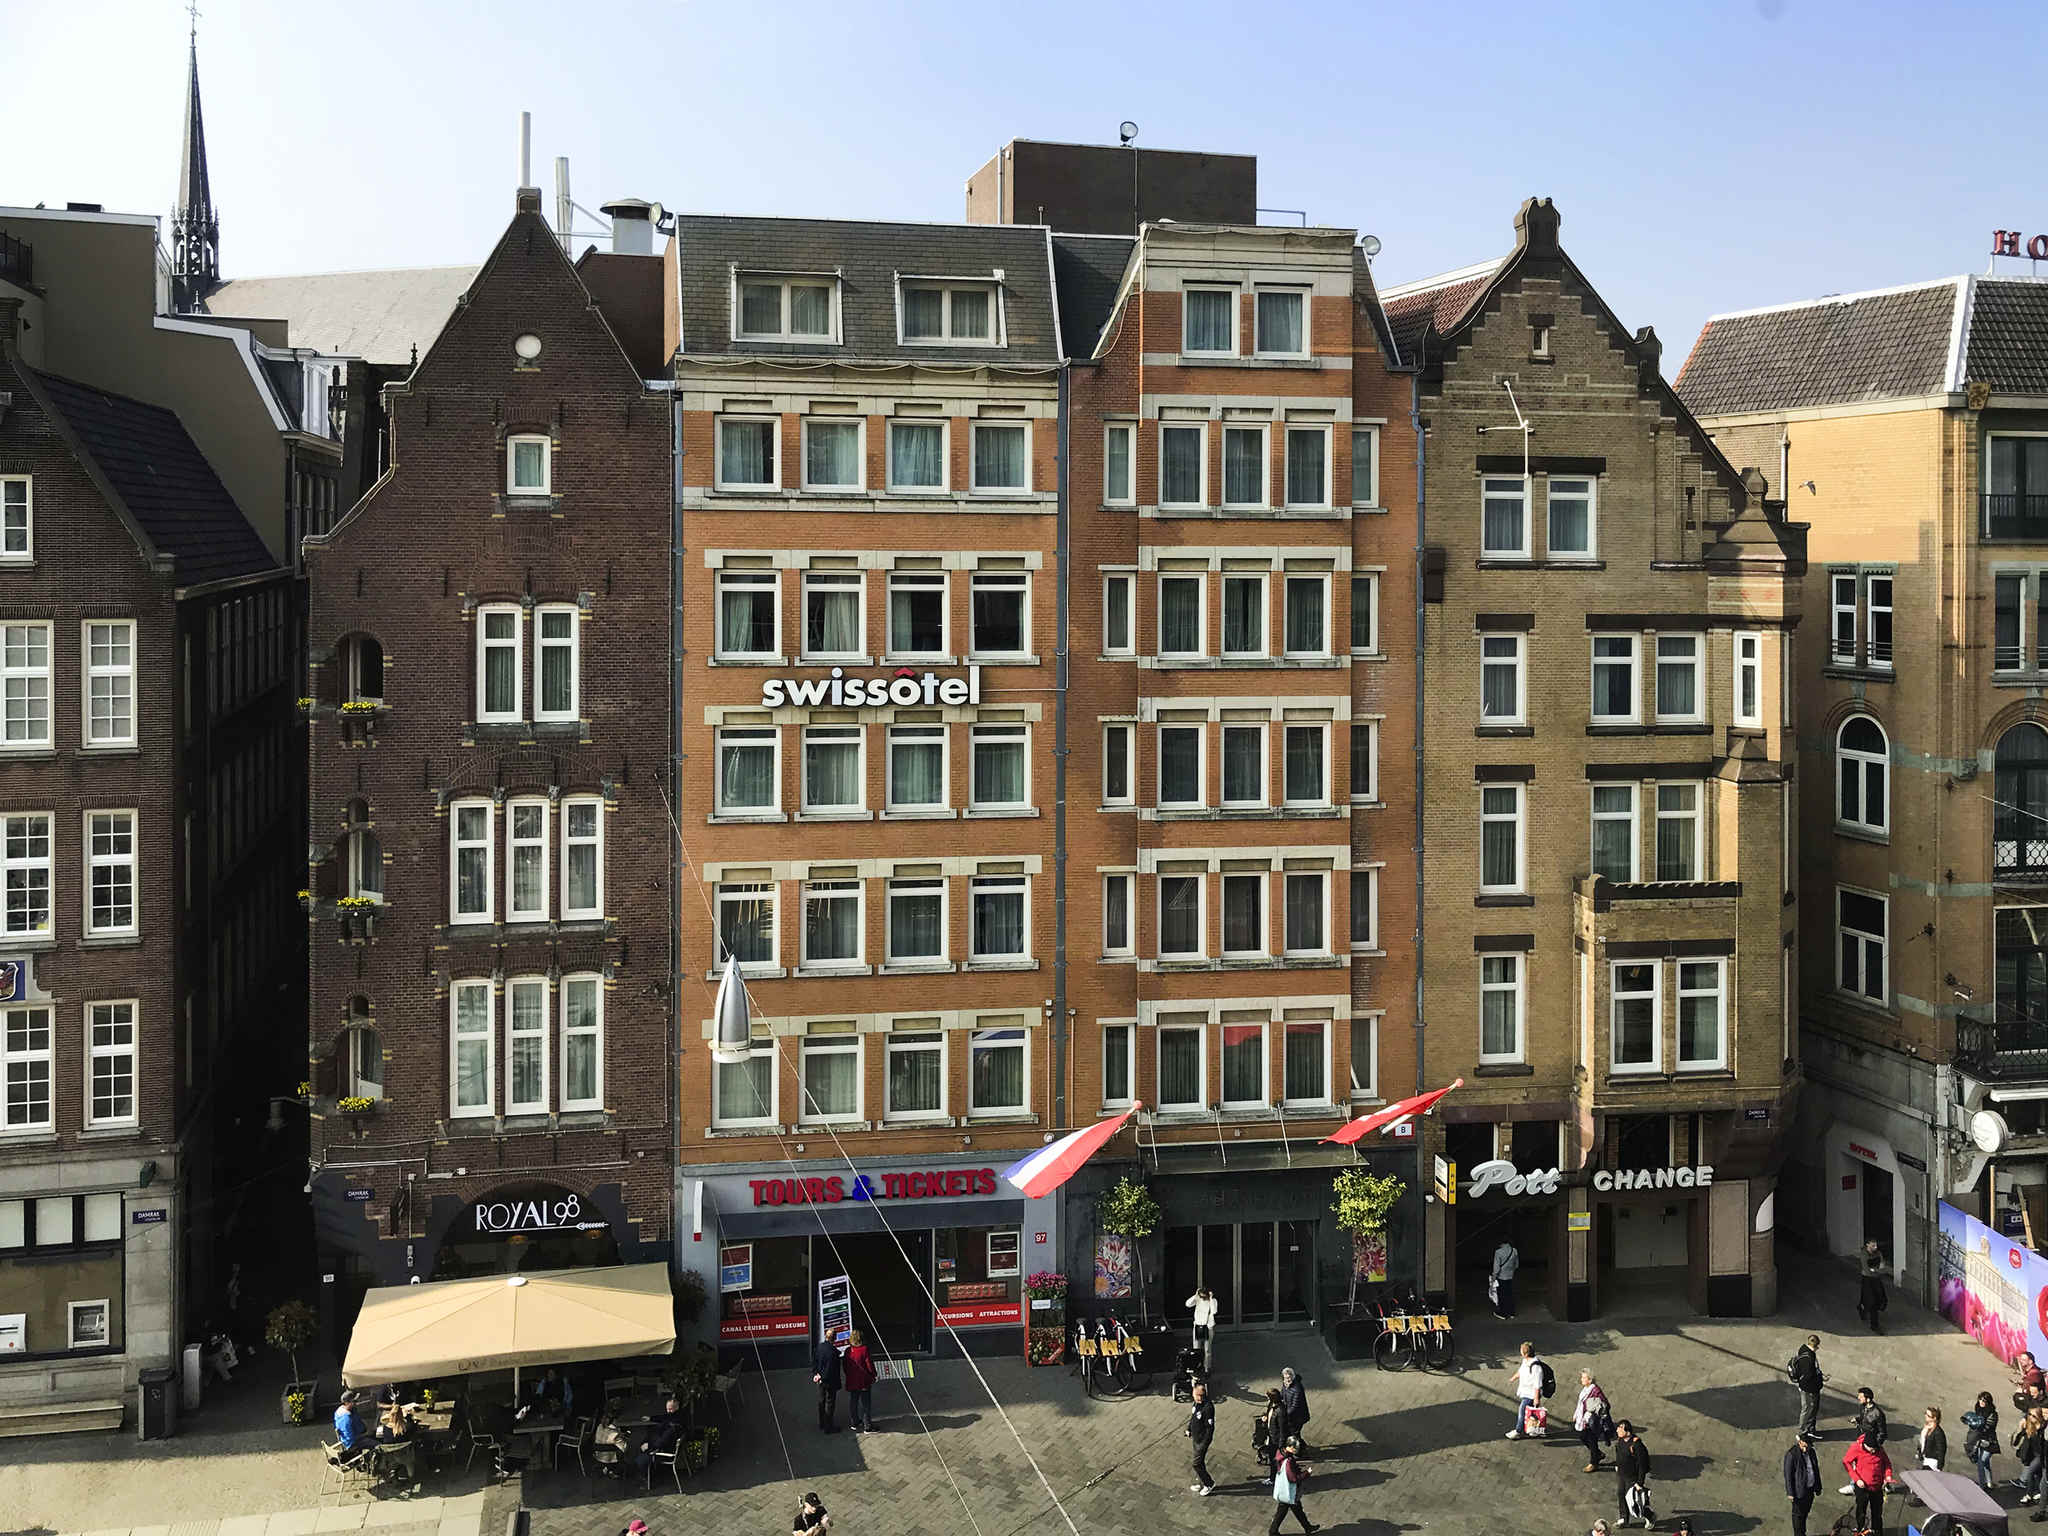 Luxury hotel amsterdam centre swissotel near dam square for Swissotel amsterdam